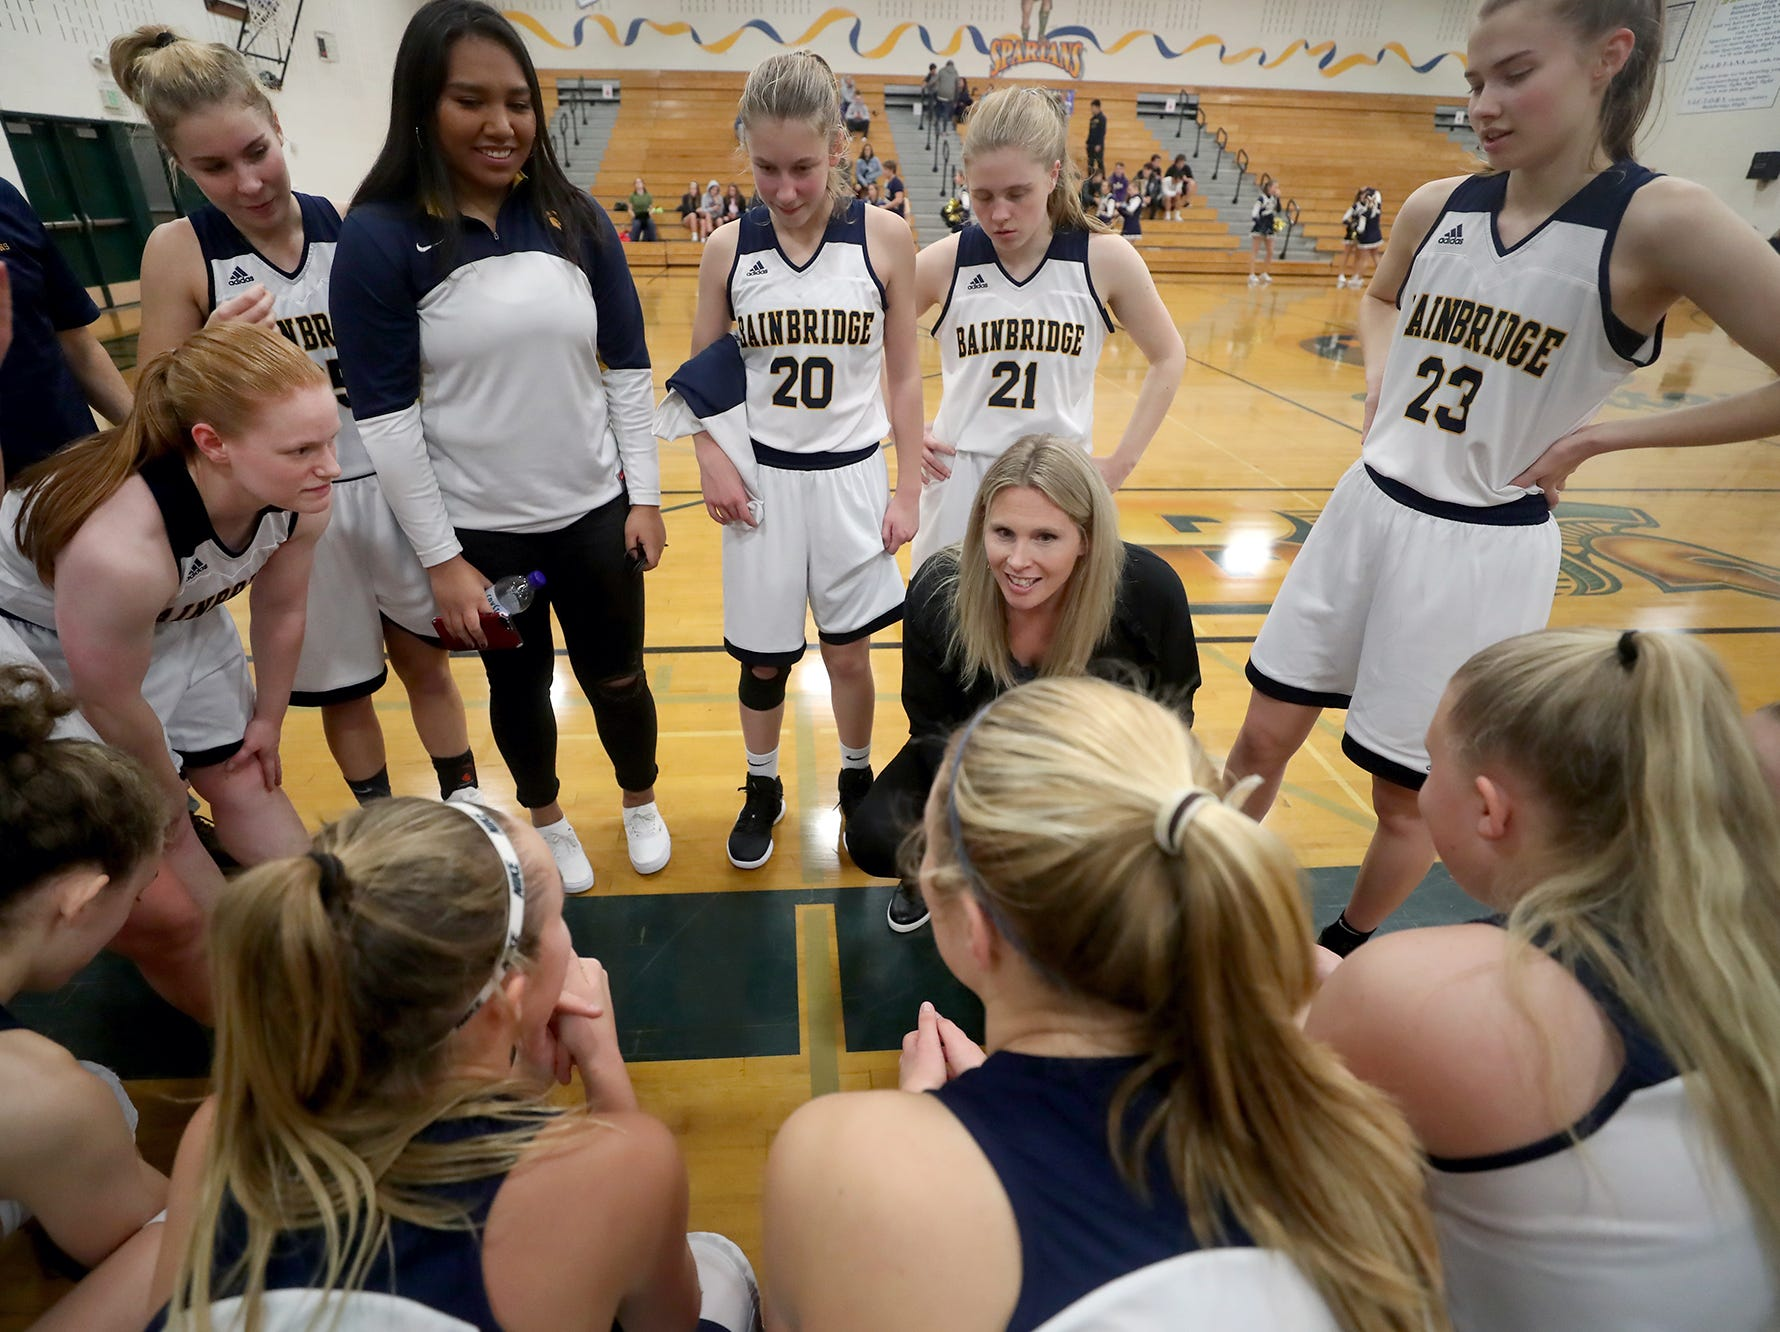 The Bainbridge girls basketball team played Port Angeles at Bainbridge, on Wednesday, Nov. 28, 2018. Head coach Karen Byers, gives instructions  before tip off.